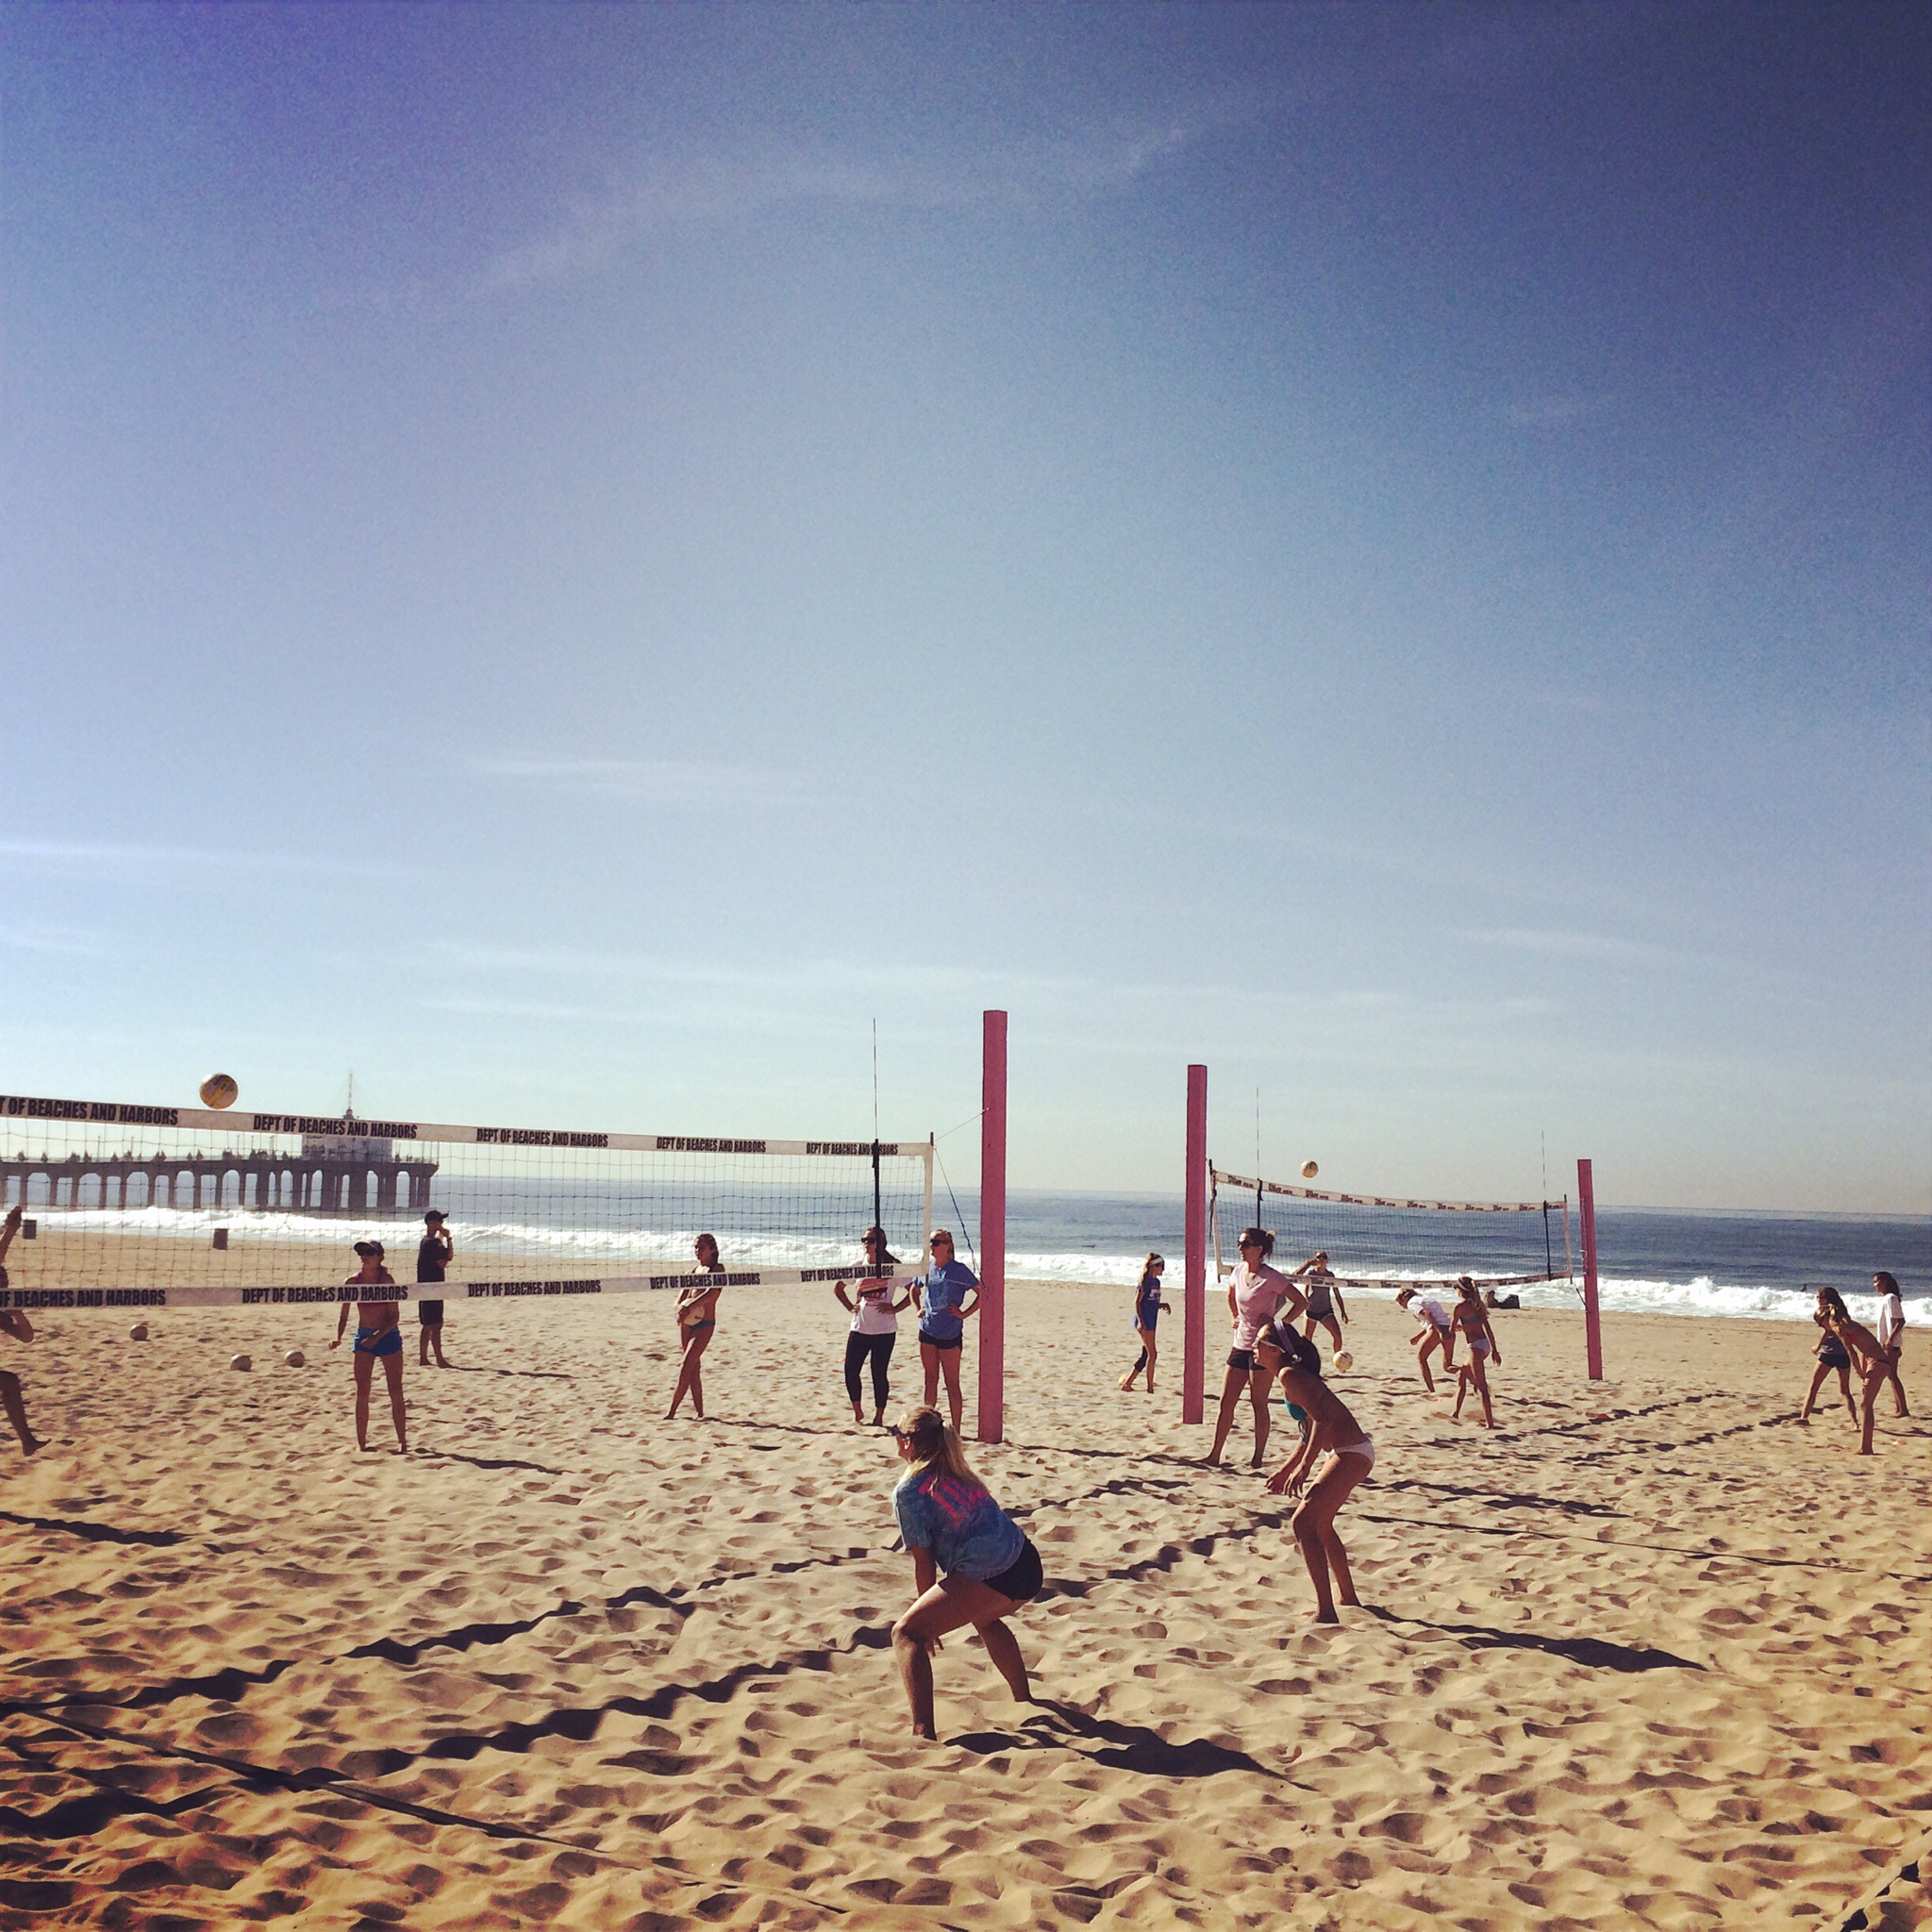 Two courts going at a time. 1 court has two mini games while the other court is full court beach vb!